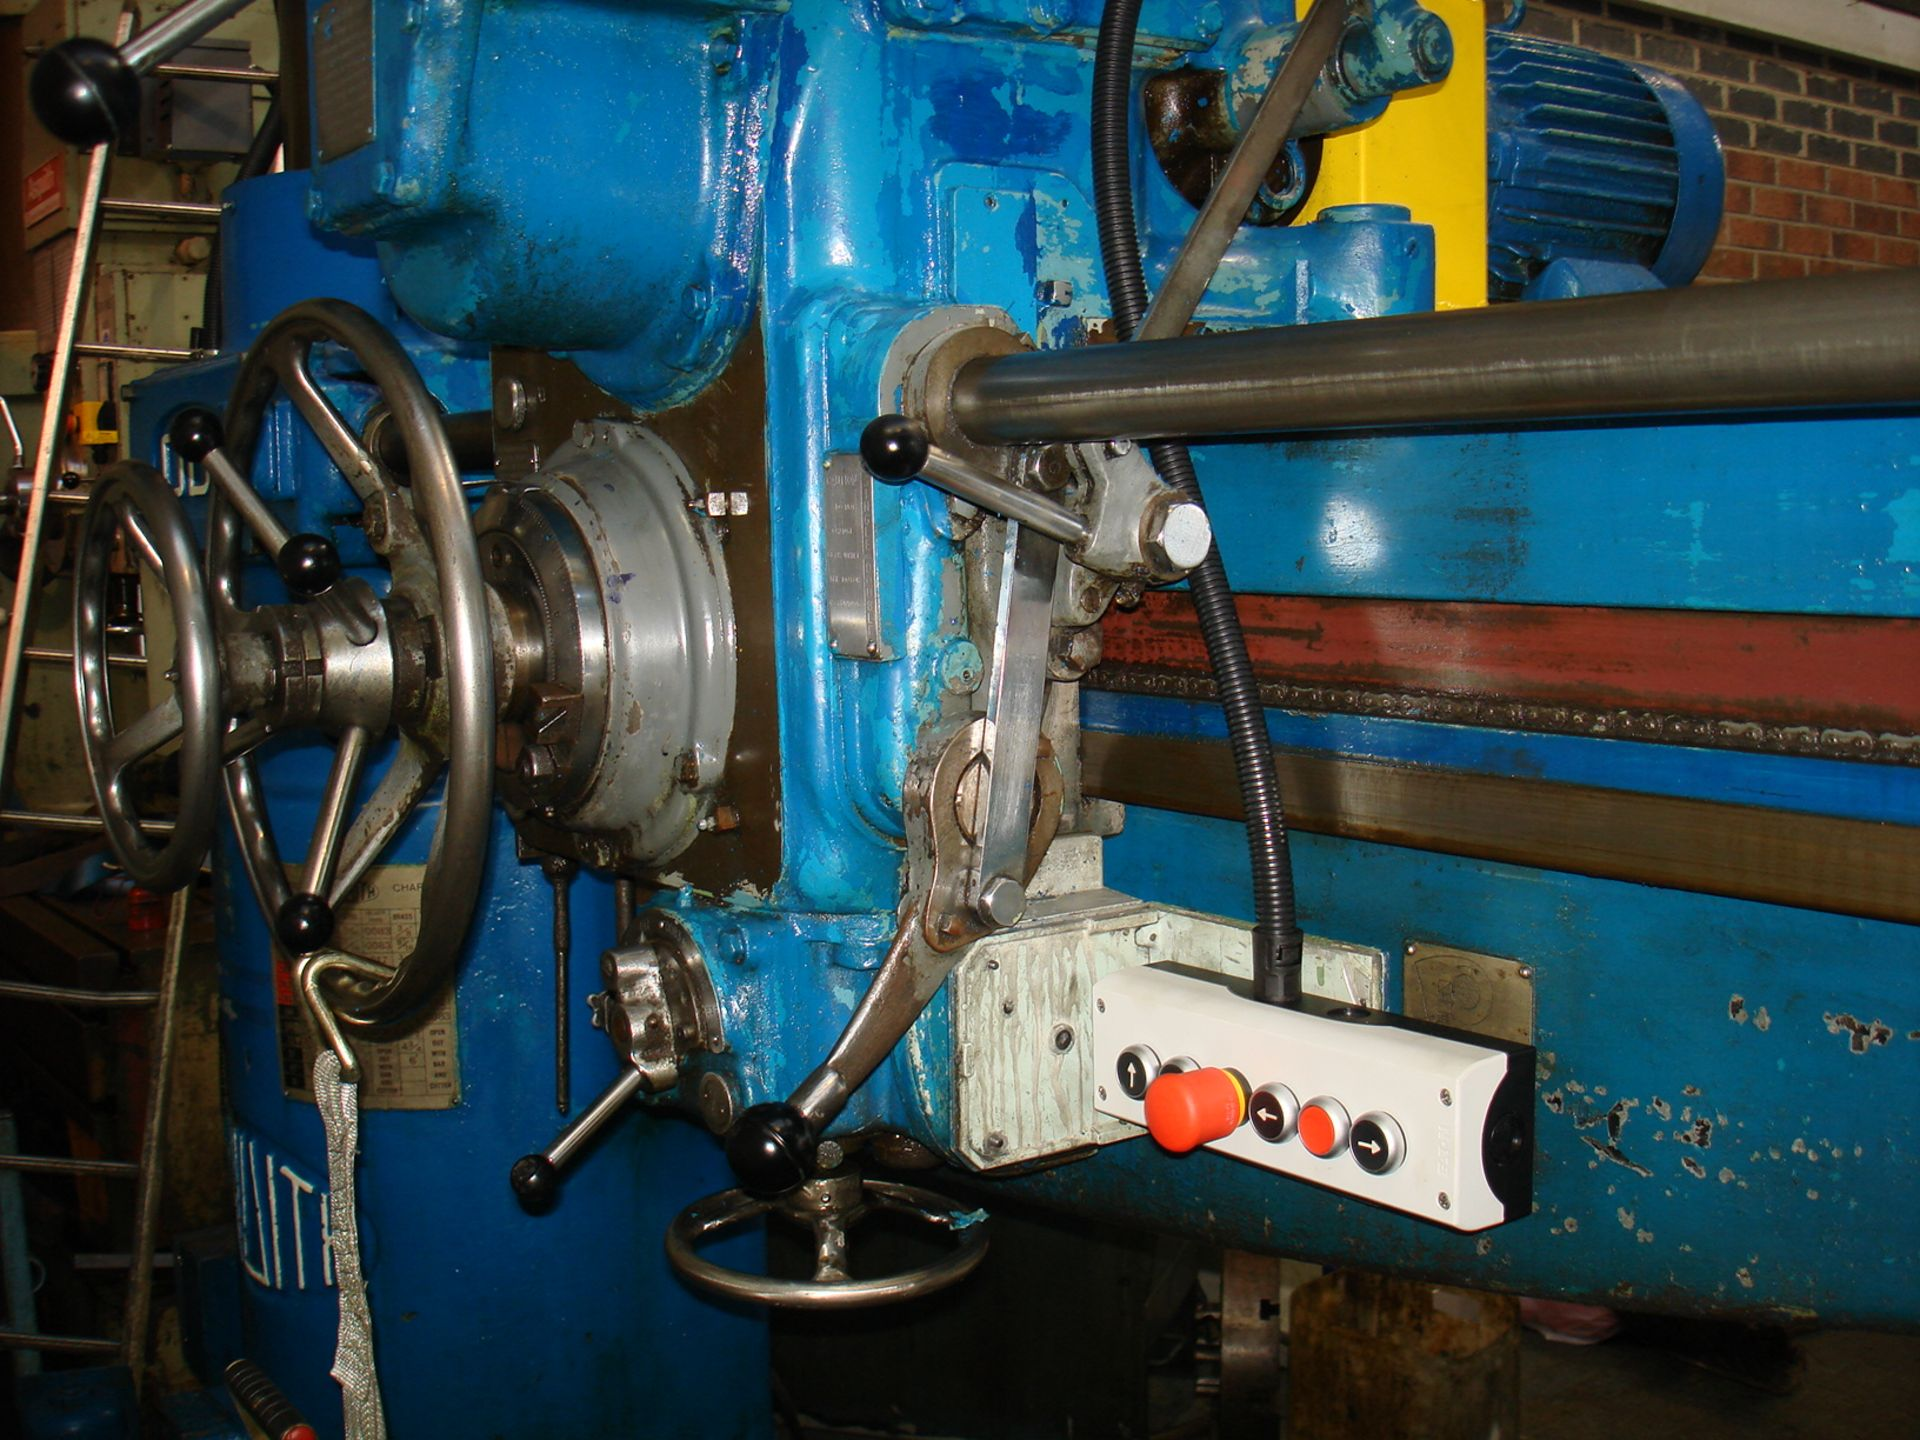 Asquith OD1 6ft Radial Arm Drill. Arm lenght 6ft. Spindle 5 Morse Taper. Speeds 8-800rpm. Box Table. - Image 5 of 7